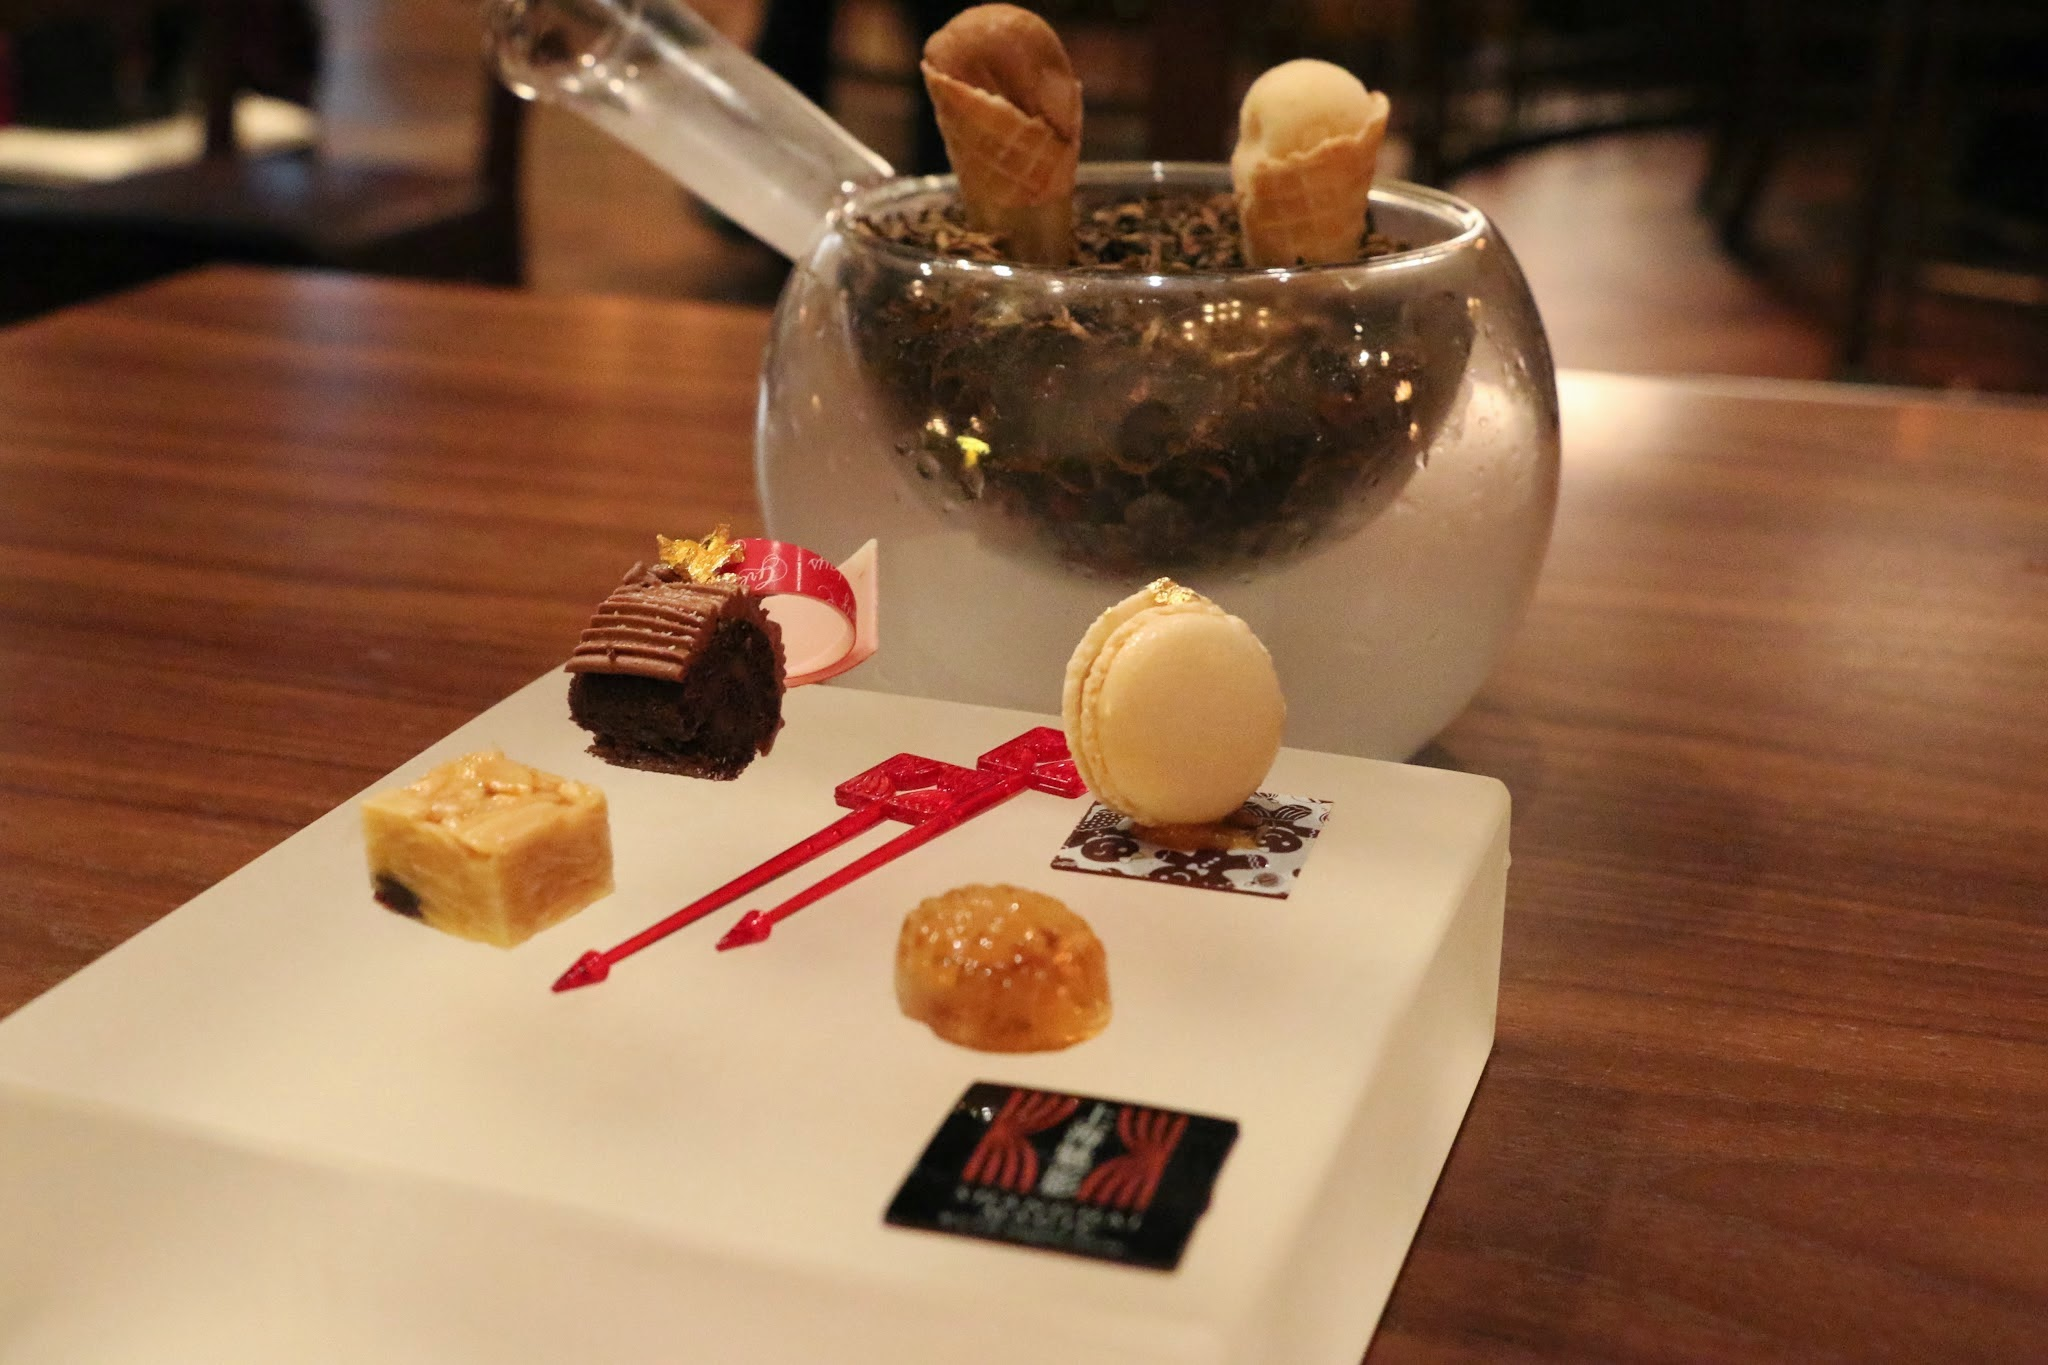 Shanghai Magic, Studio City Macau, Petit Fours, Milk Tea Sorbet, Yuzu ice cream cone, durian macaron, chocolate brownie